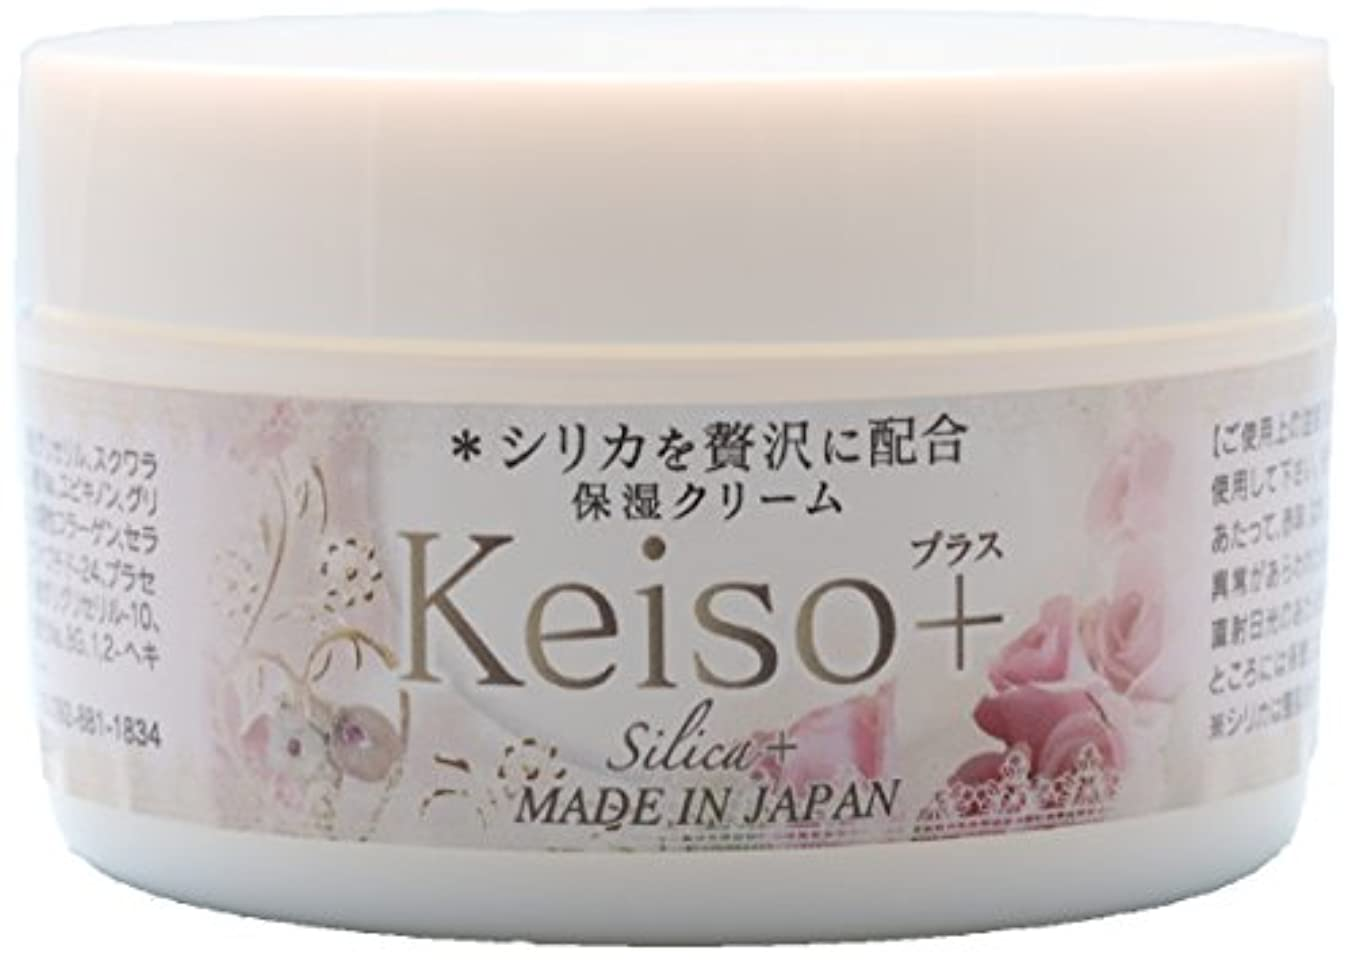 Keiso+ 高濃度シリカ(ケイ素) 保湿クリーム 100g Silica Cream